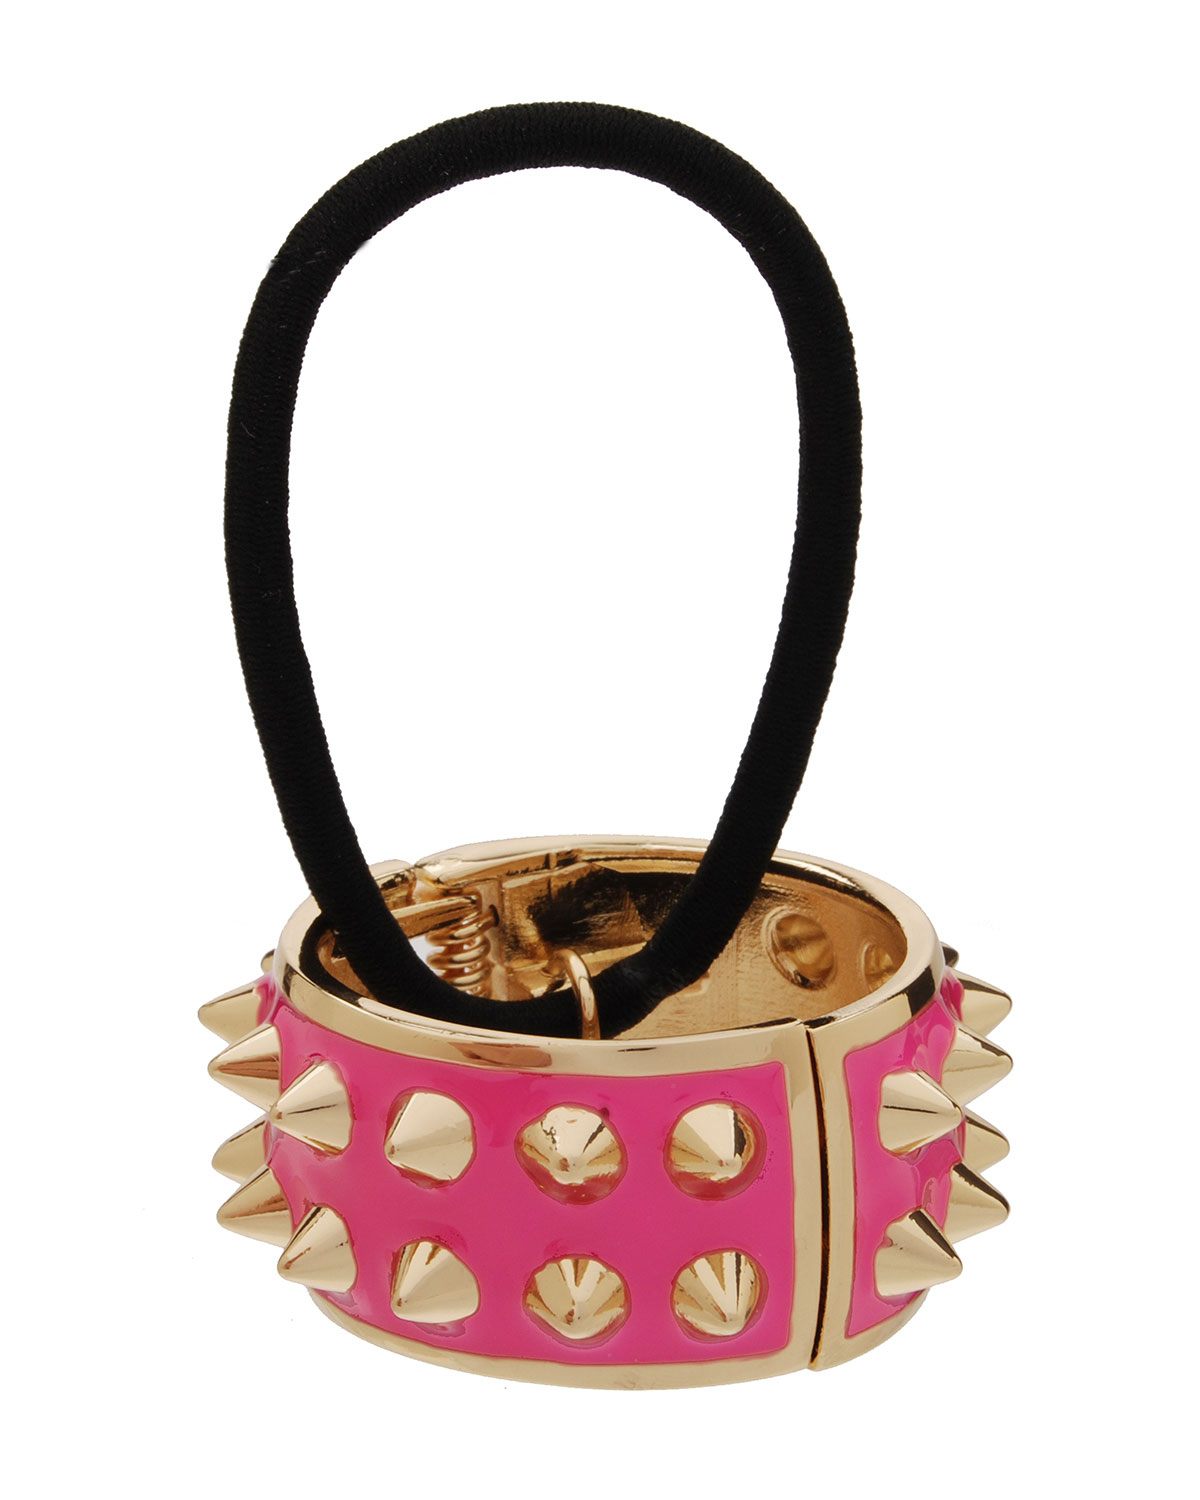 Spiked Enamel Ponytail Holder with Cuff, Watermelon